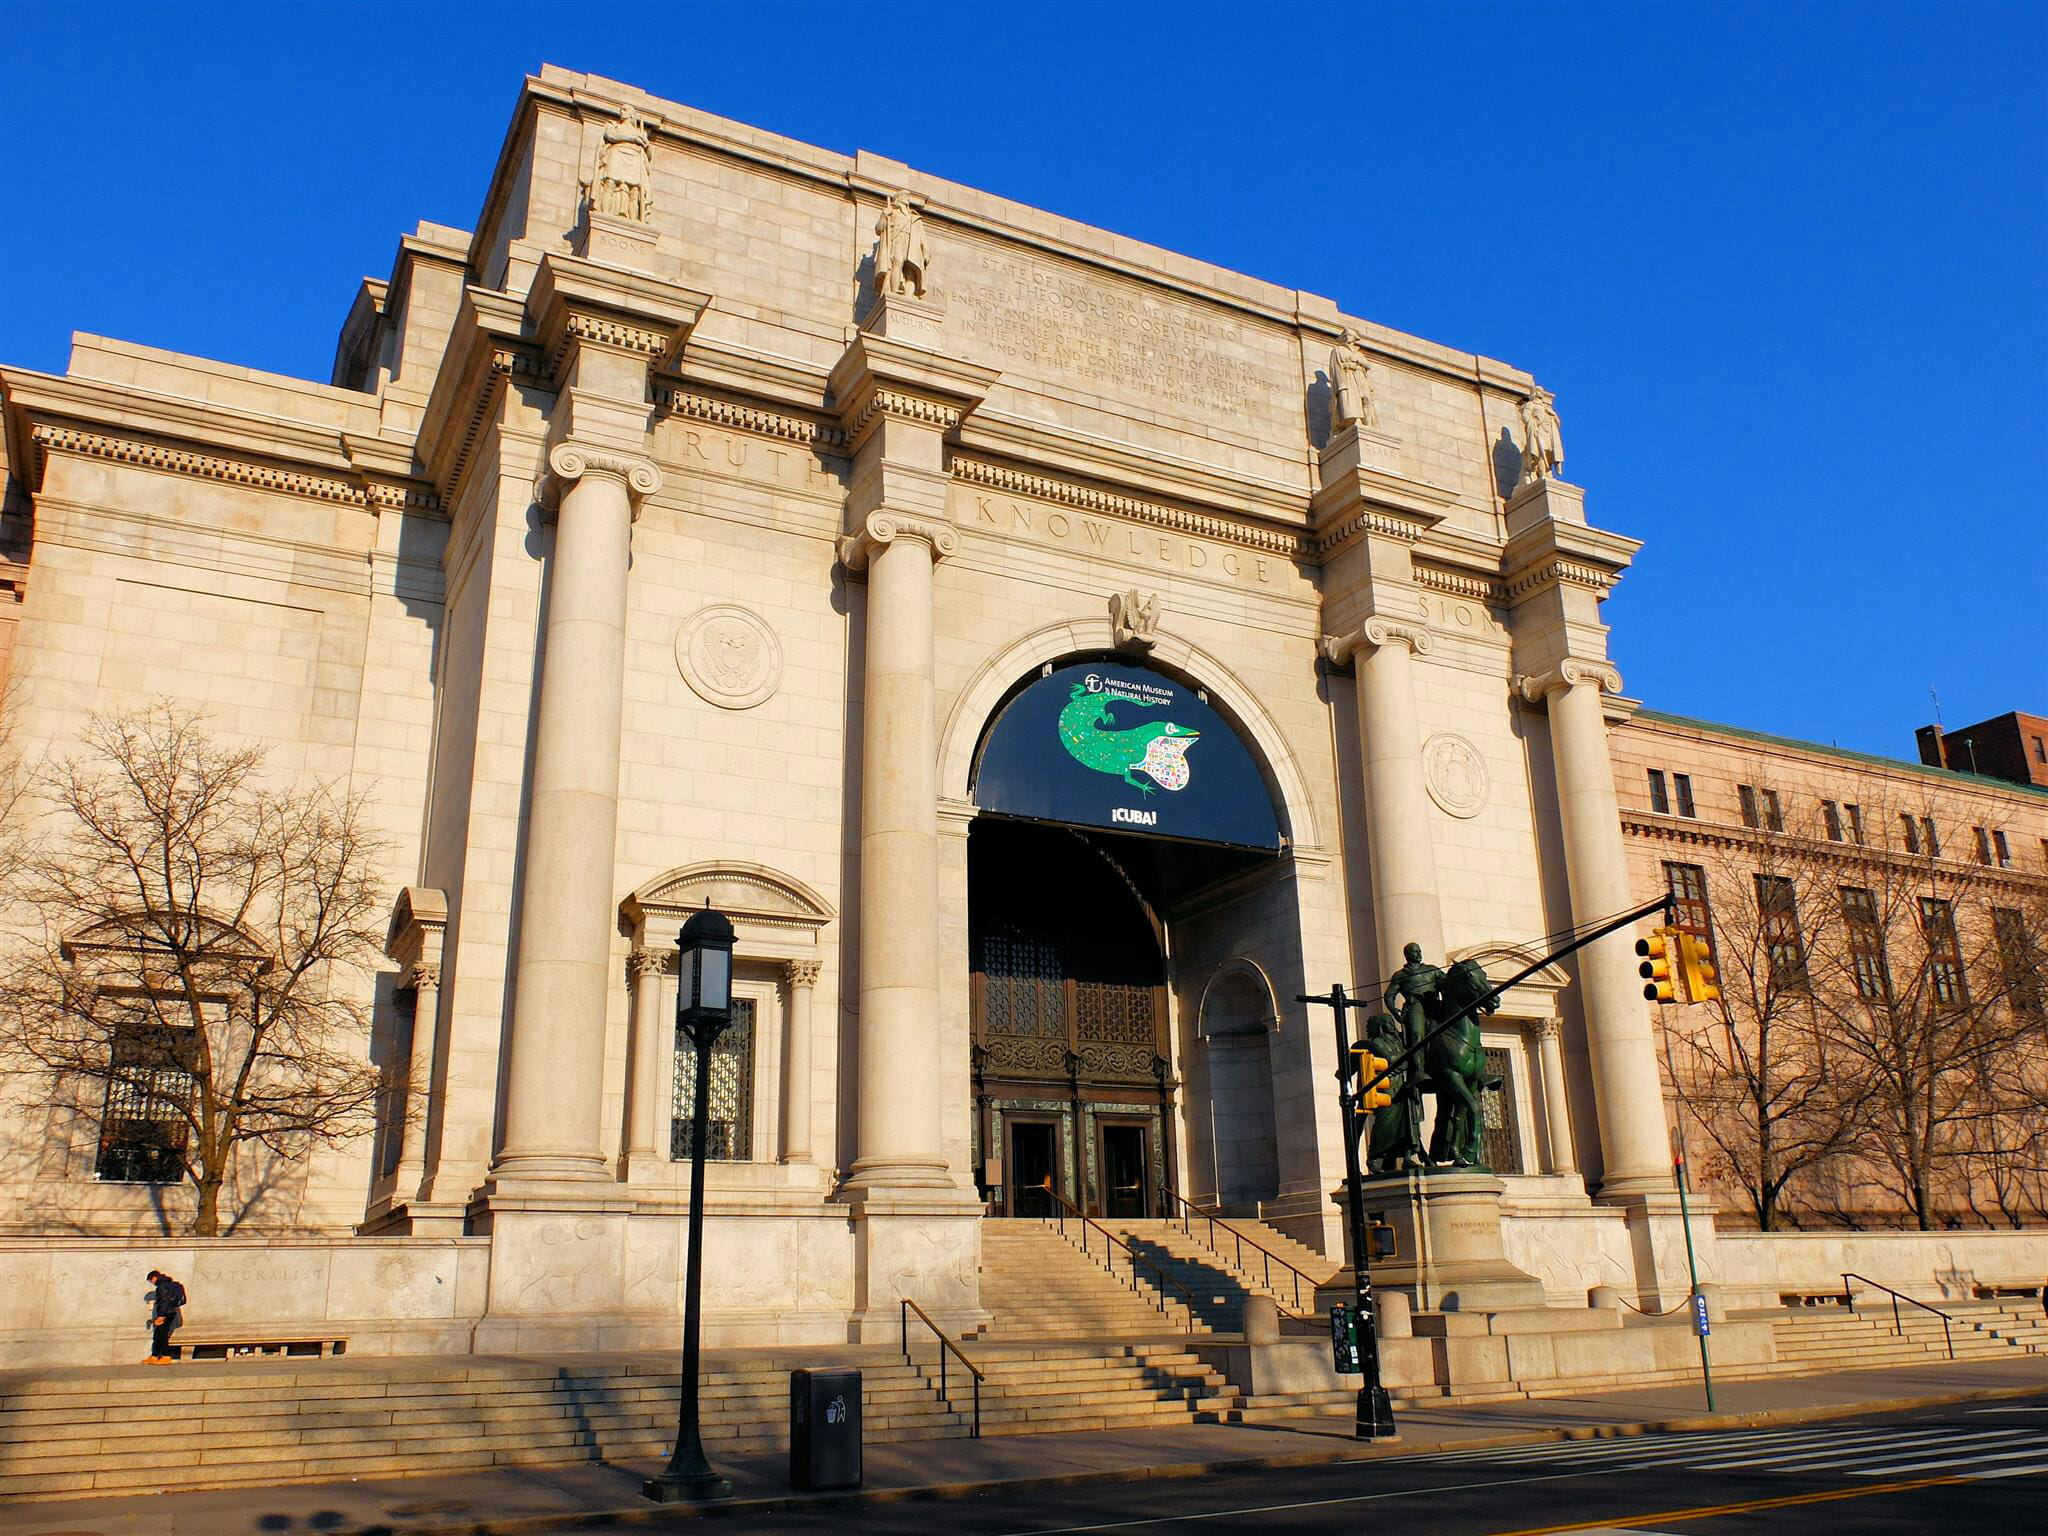 American Museum of Natural History New York City High Quality Wallpaper